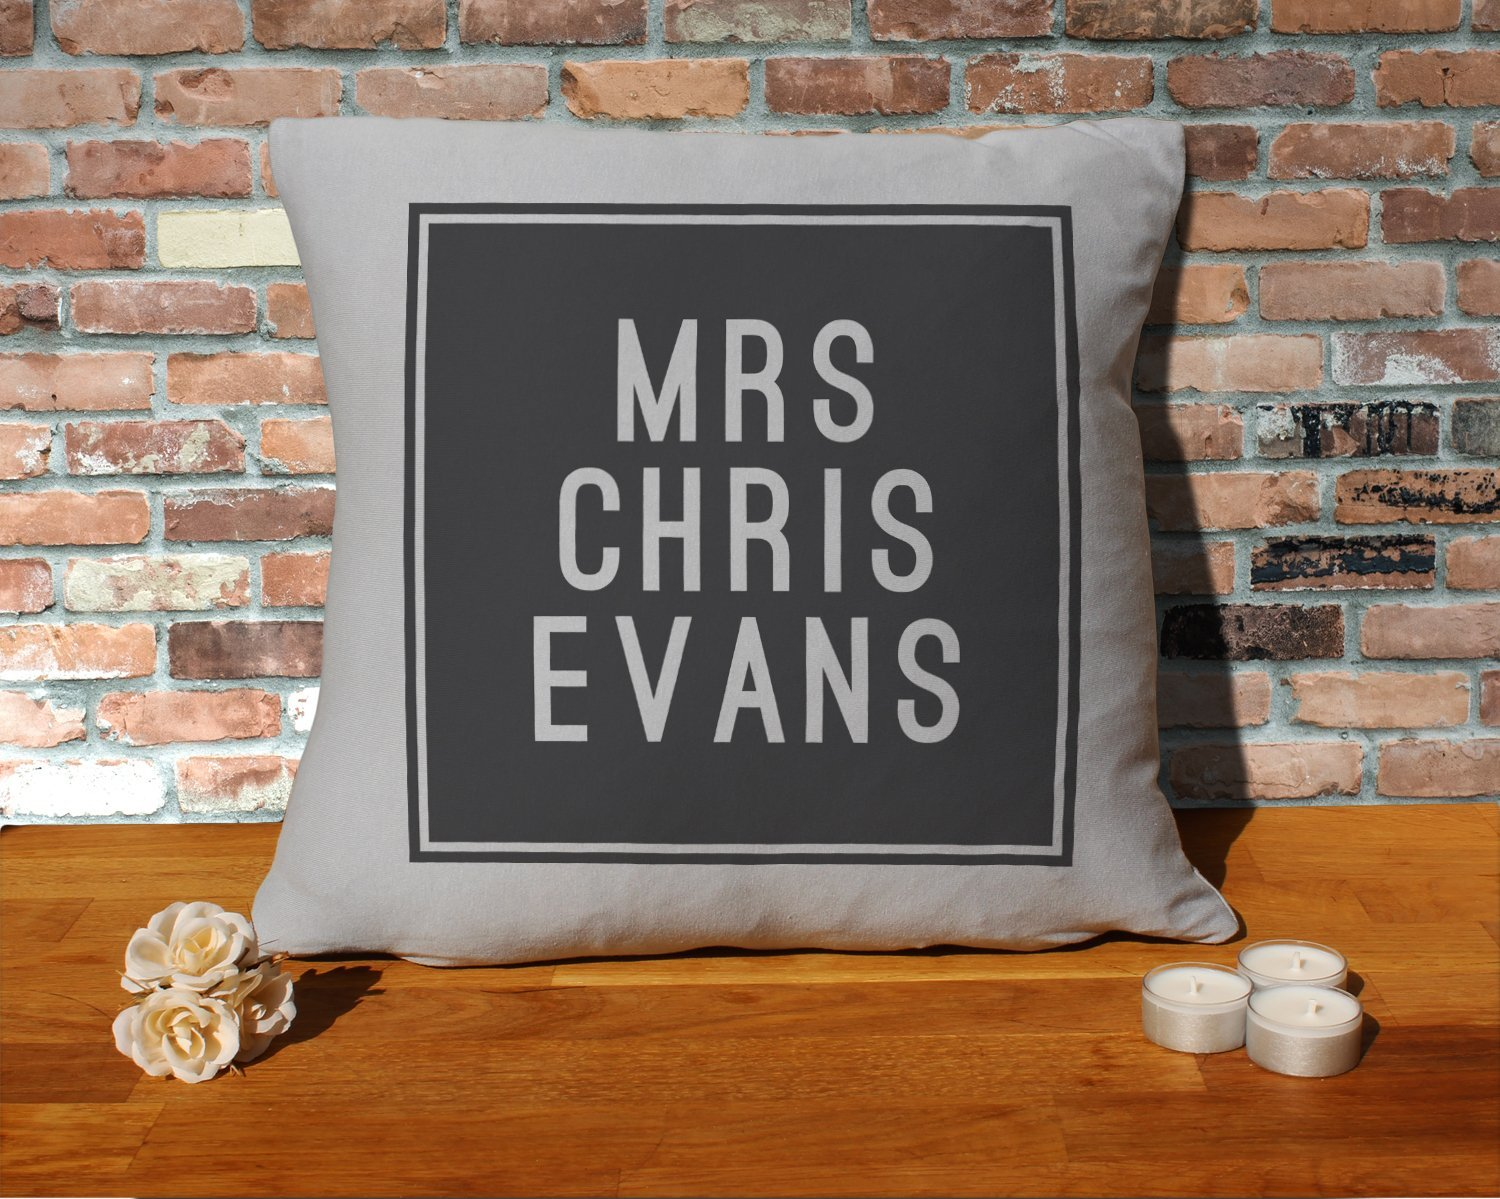 Chris Evans Cushion Pillow - Silver Grey - 100% Cotton - Available with or without filling pad - 40x40cm (Cover and filling pad) The Stocking Fillers